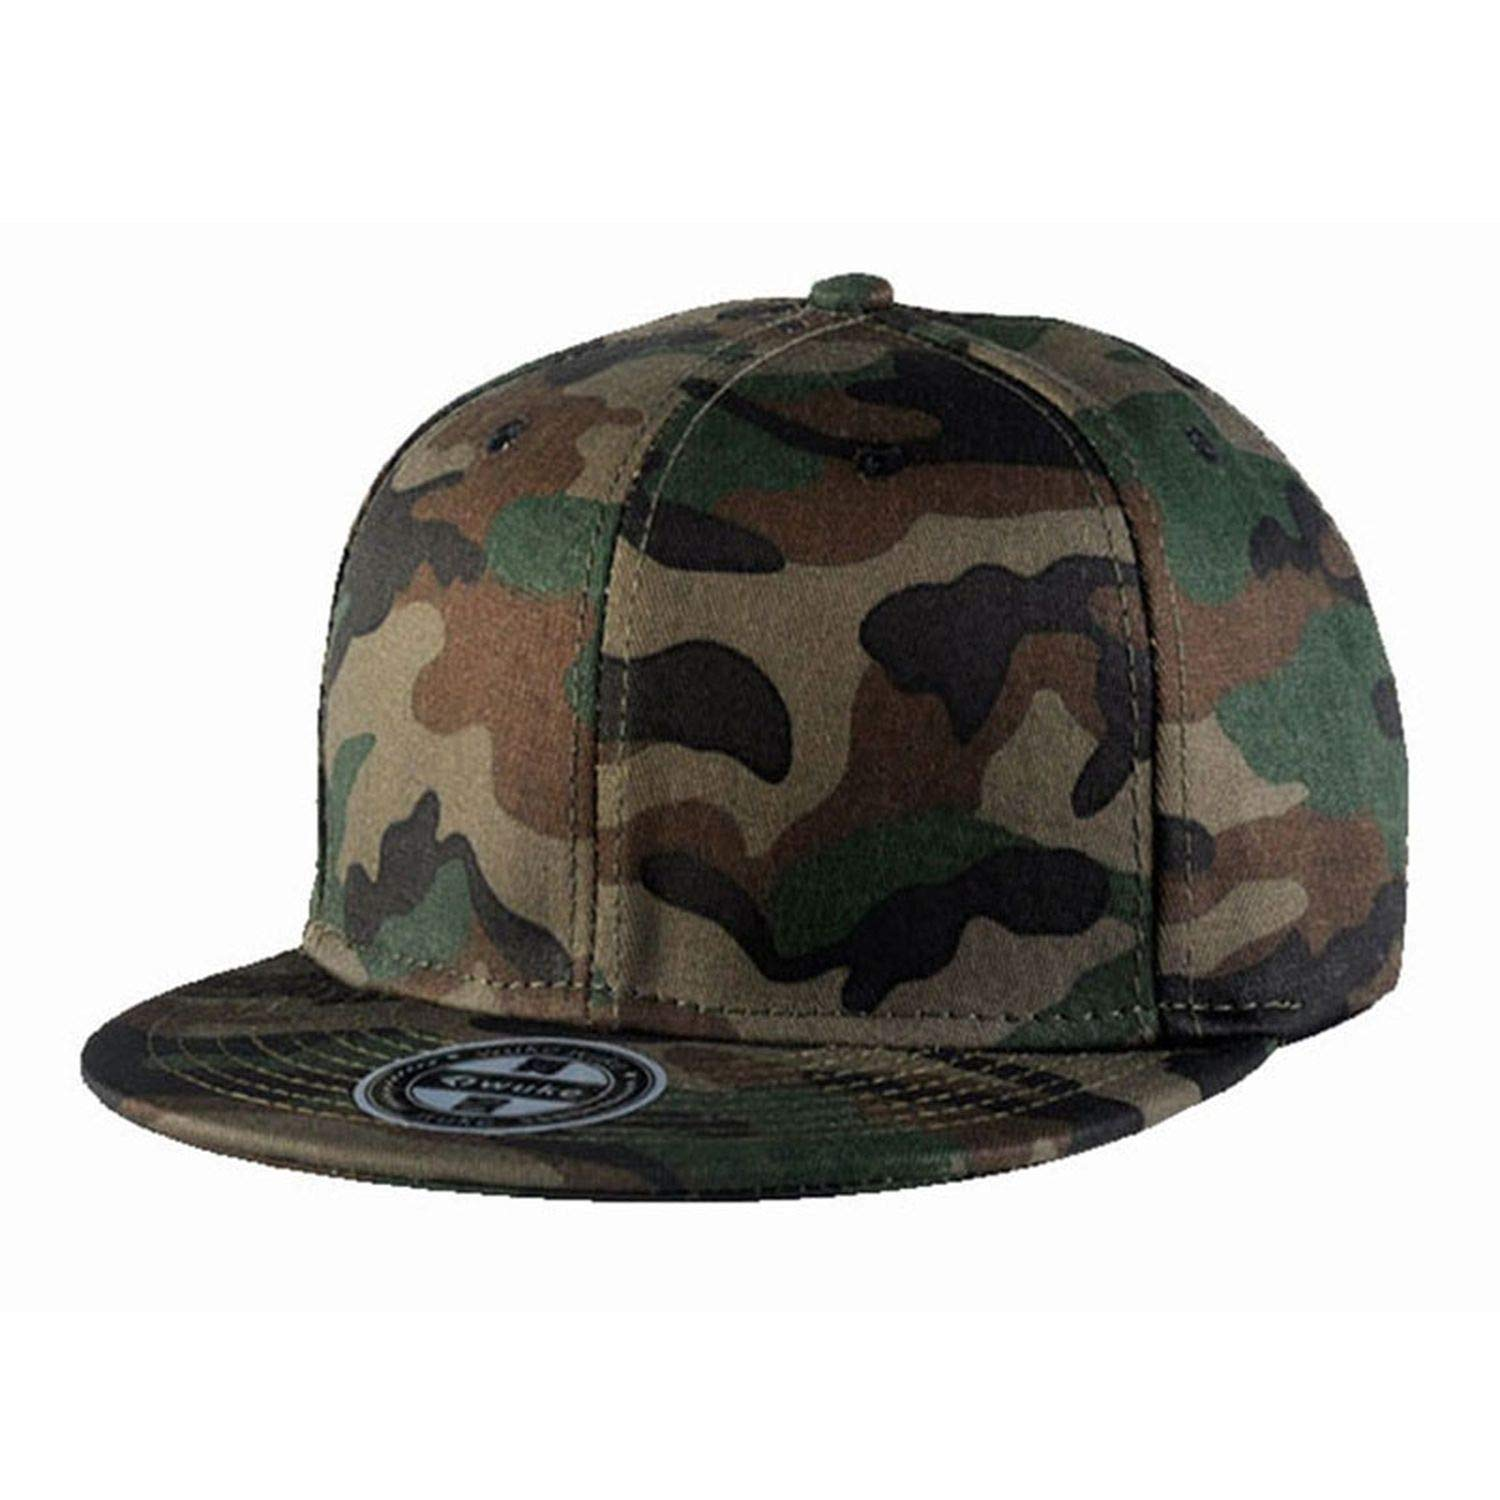 Moktasp Camo Baseball Cap Mens Snapback Hats for Men 2019 New Gorras Planas Hip Hop Hunting Army Caps Camouflage Hat at Amazon Mens Clothing store: